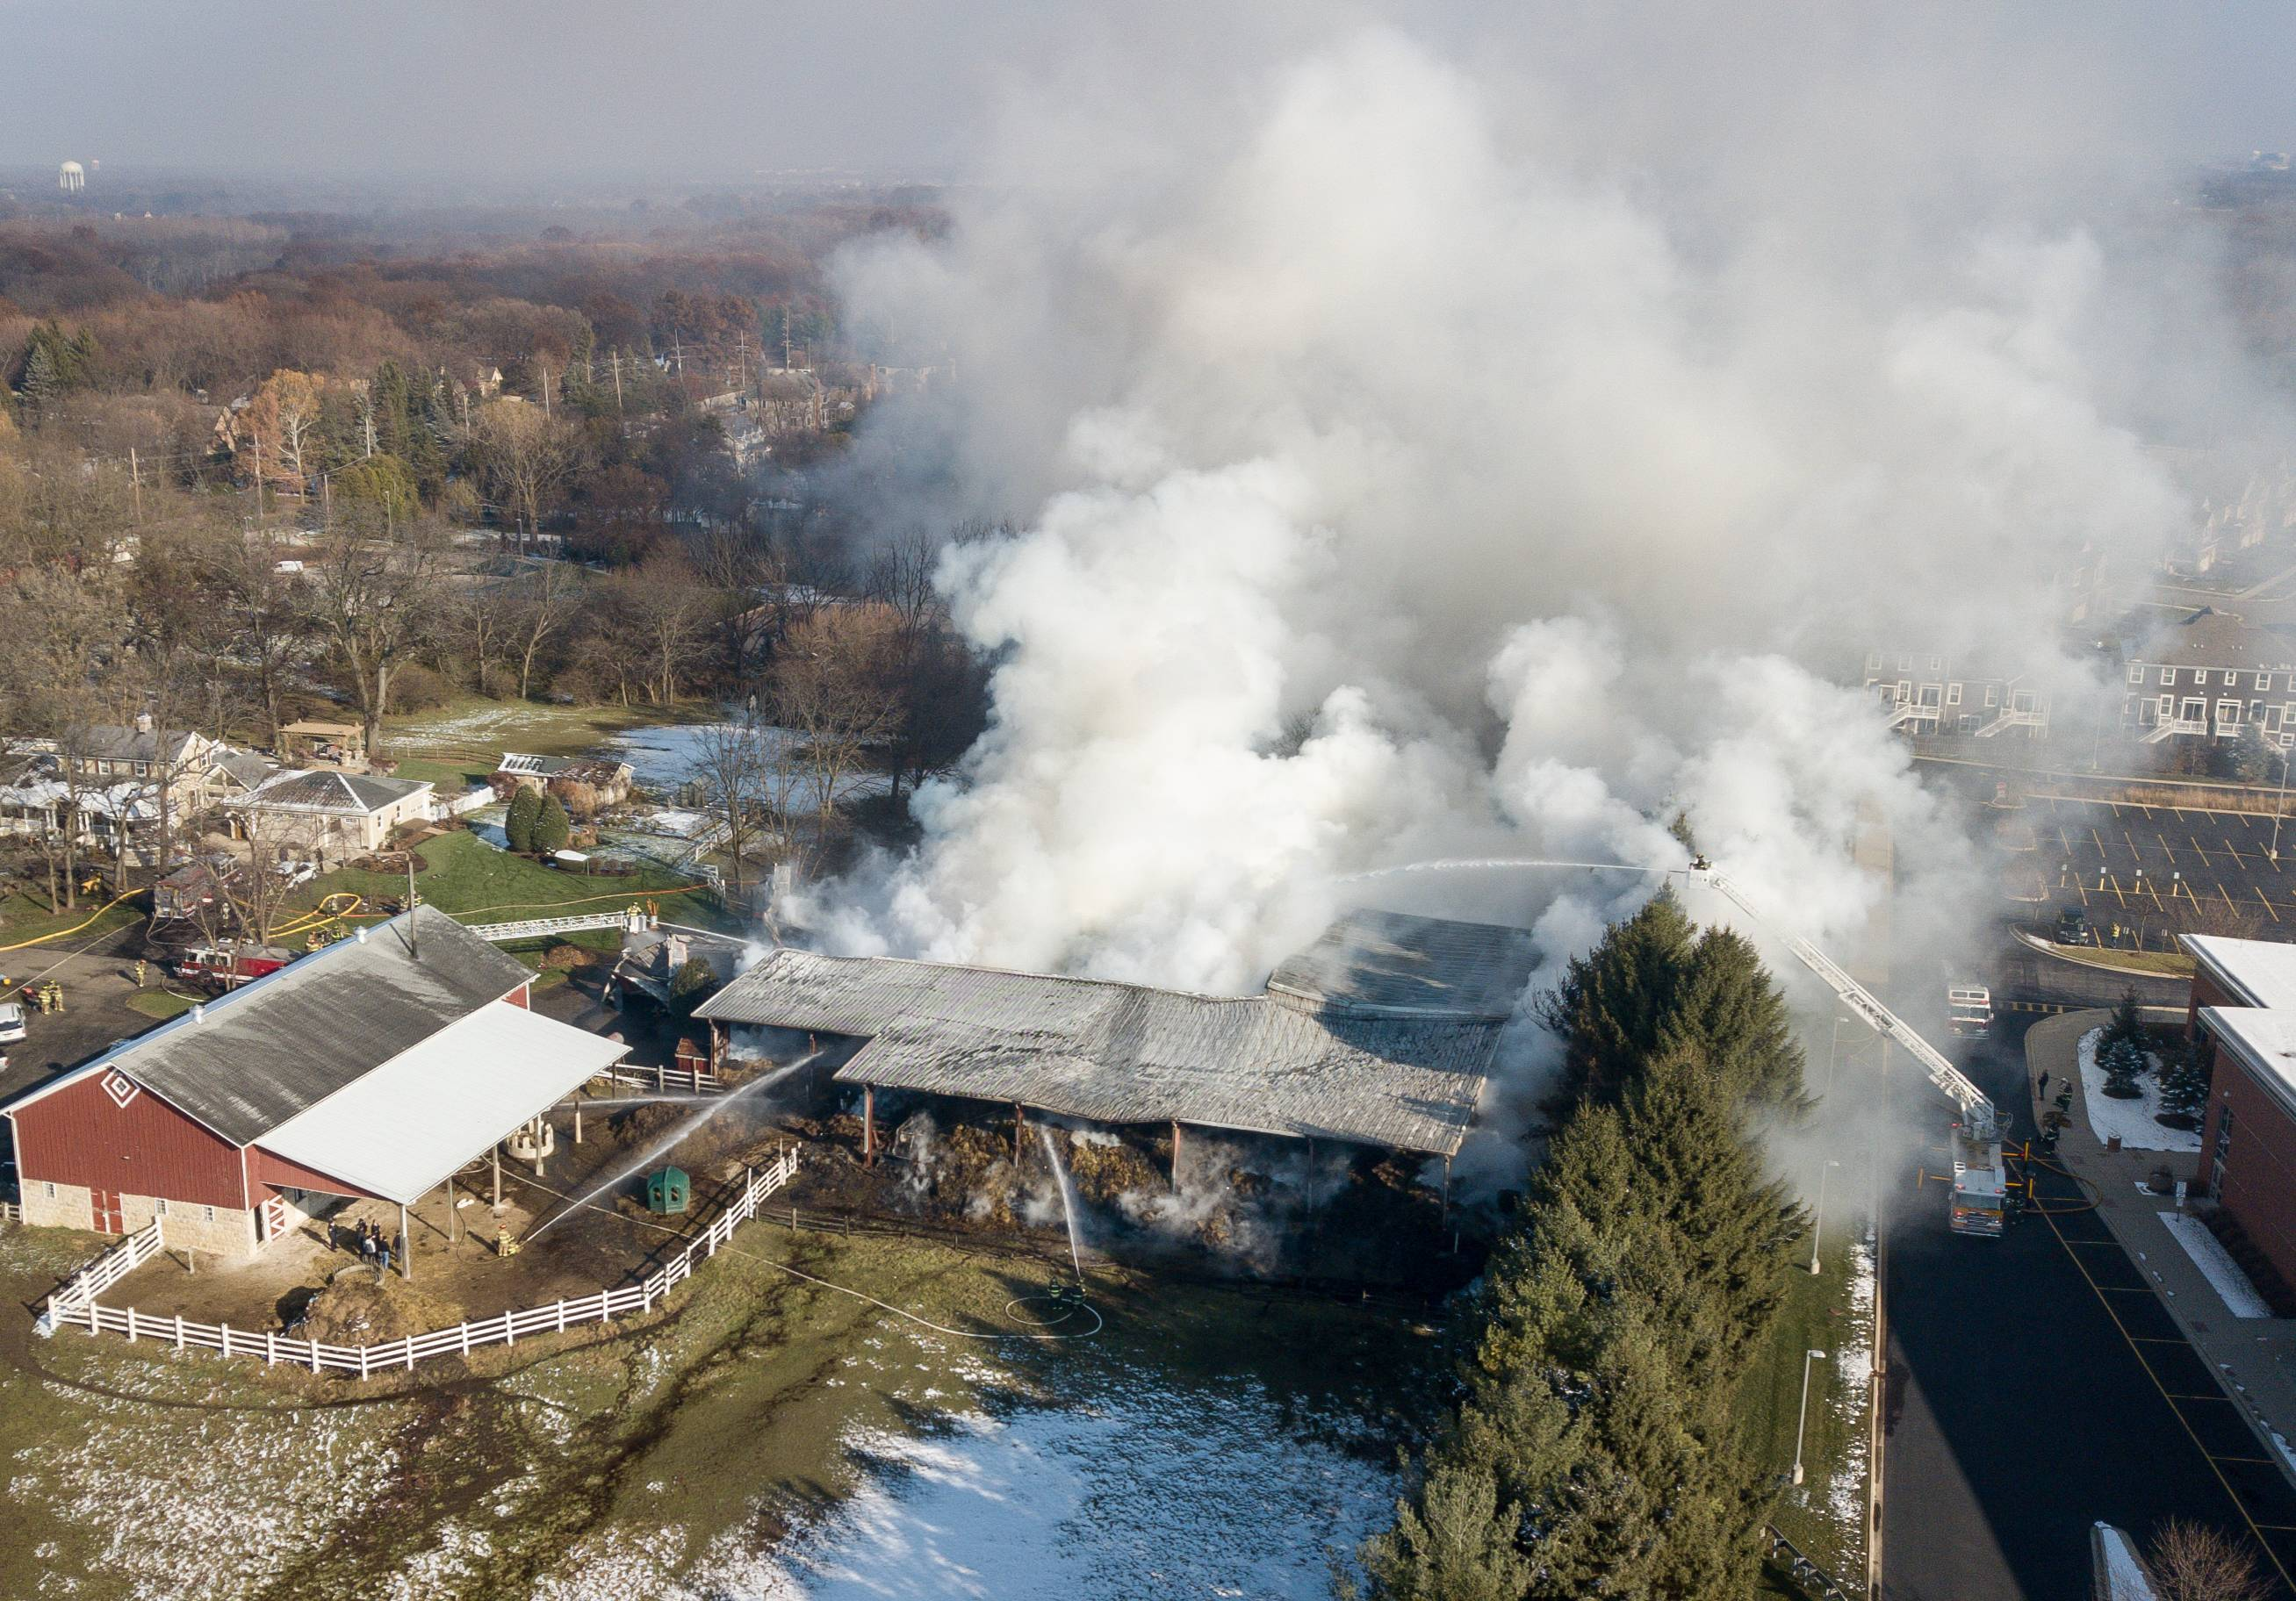 Firefighters are expected to remain at Galusha Farm near Warrenville through Wednesday to put out fires still smoldering in the hay barn that caught fire Monday morning.